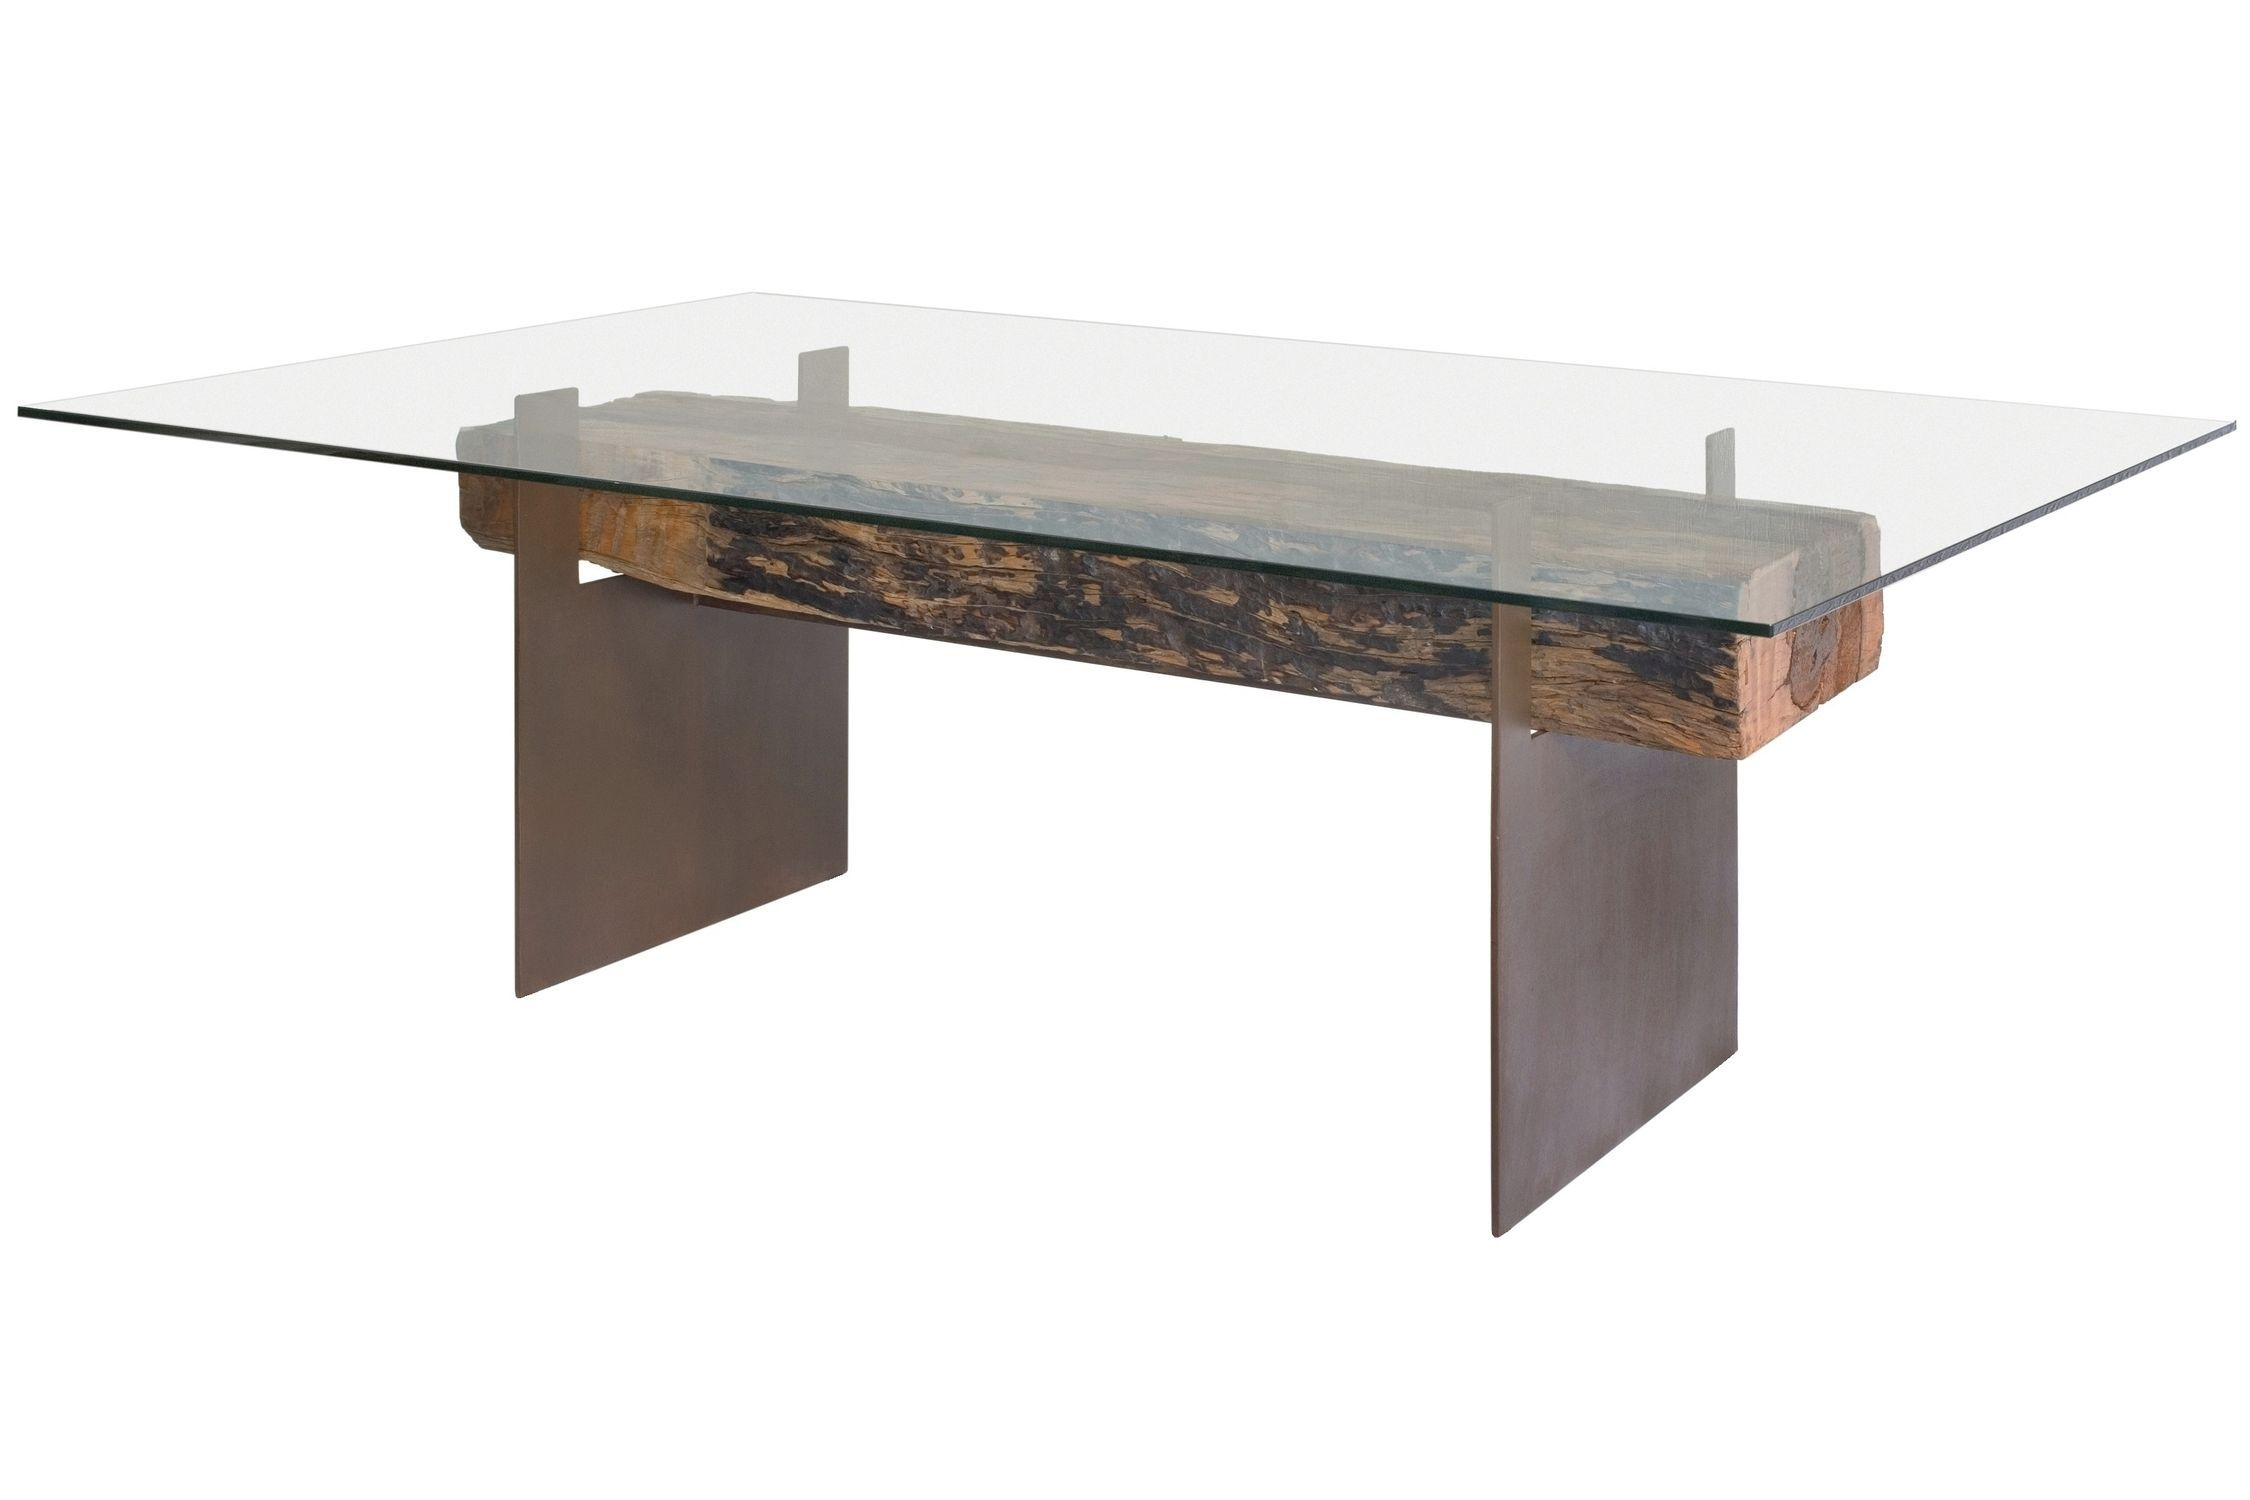 Glass Top Desk. Very Nice Looking Piece. I Would Hit My Knees On The